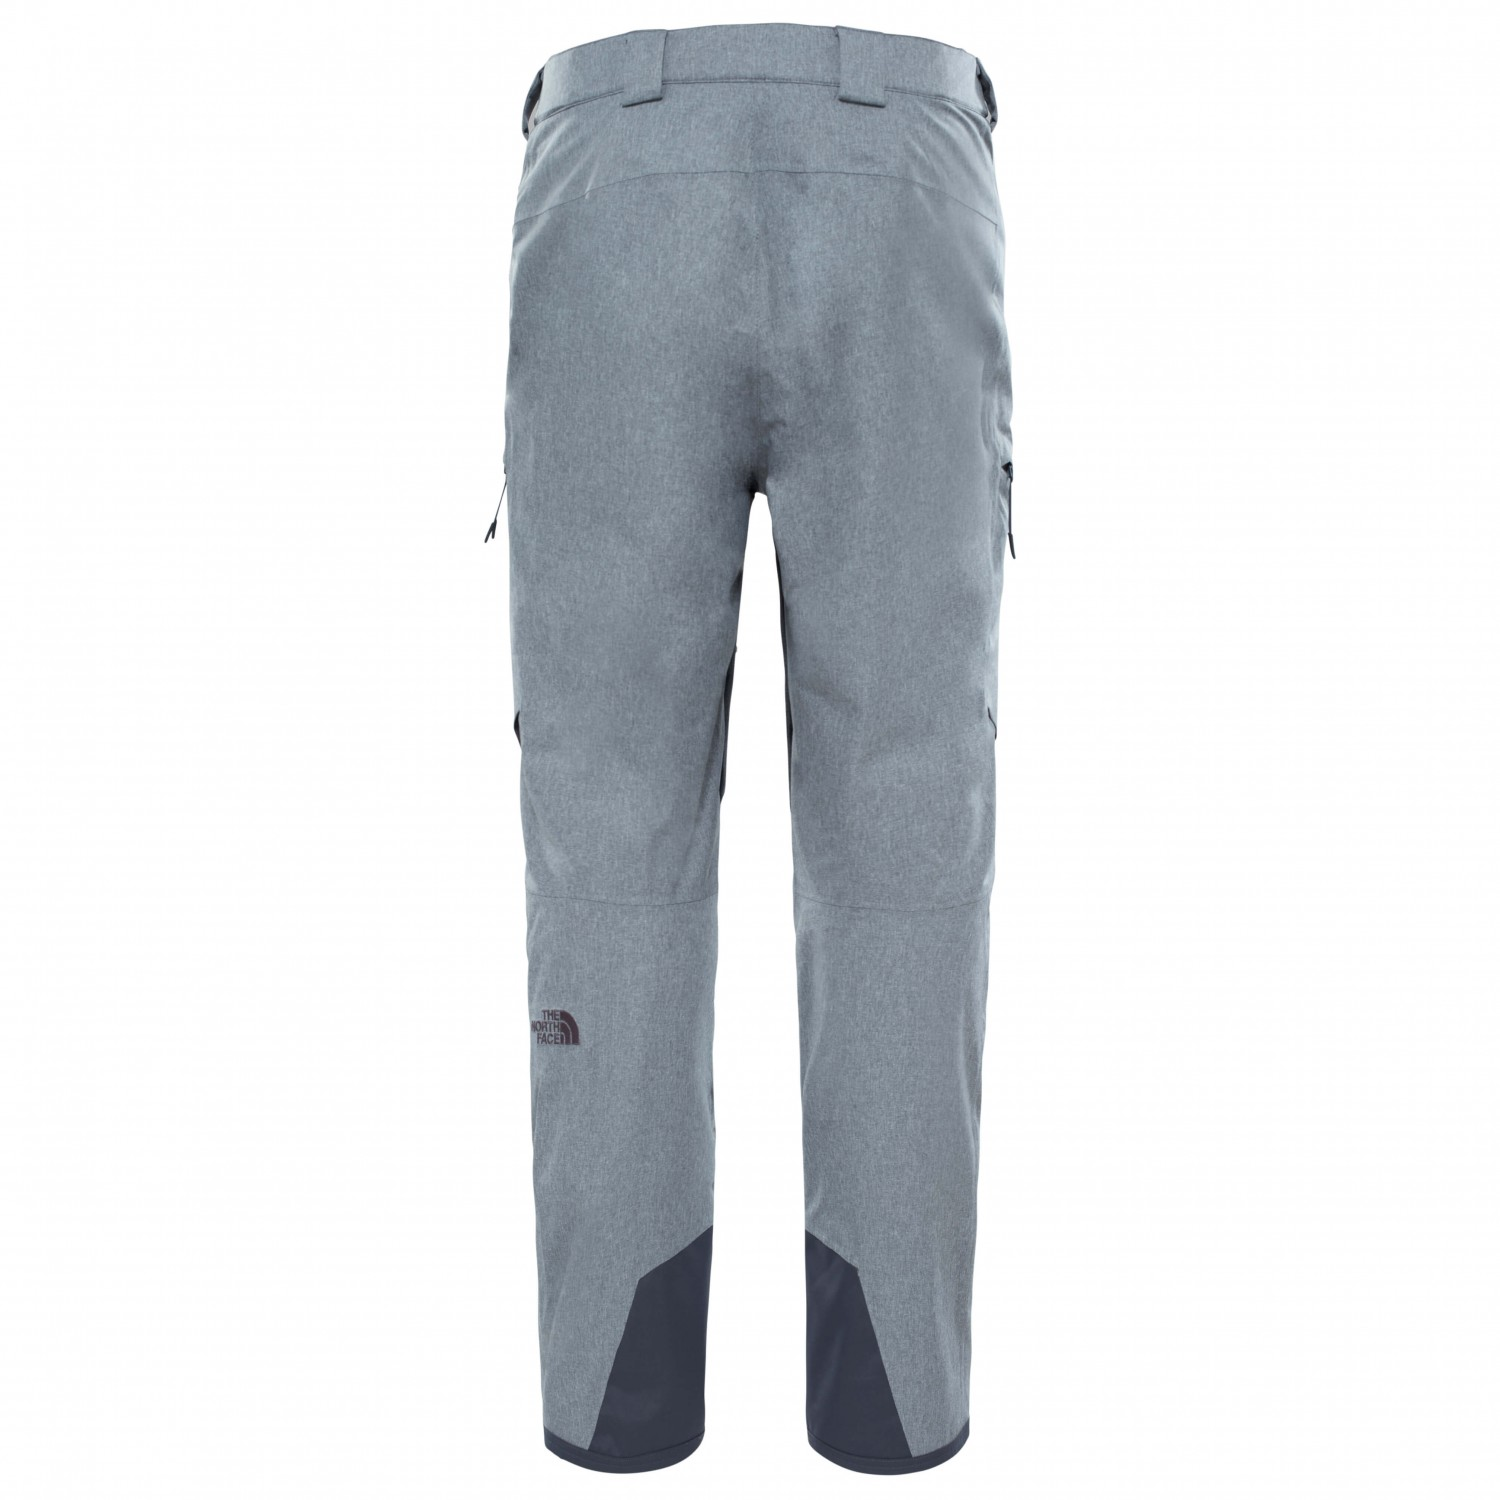 508889042 The North Face Chakal Pant - Ski Trousers Men's | Buy online ...